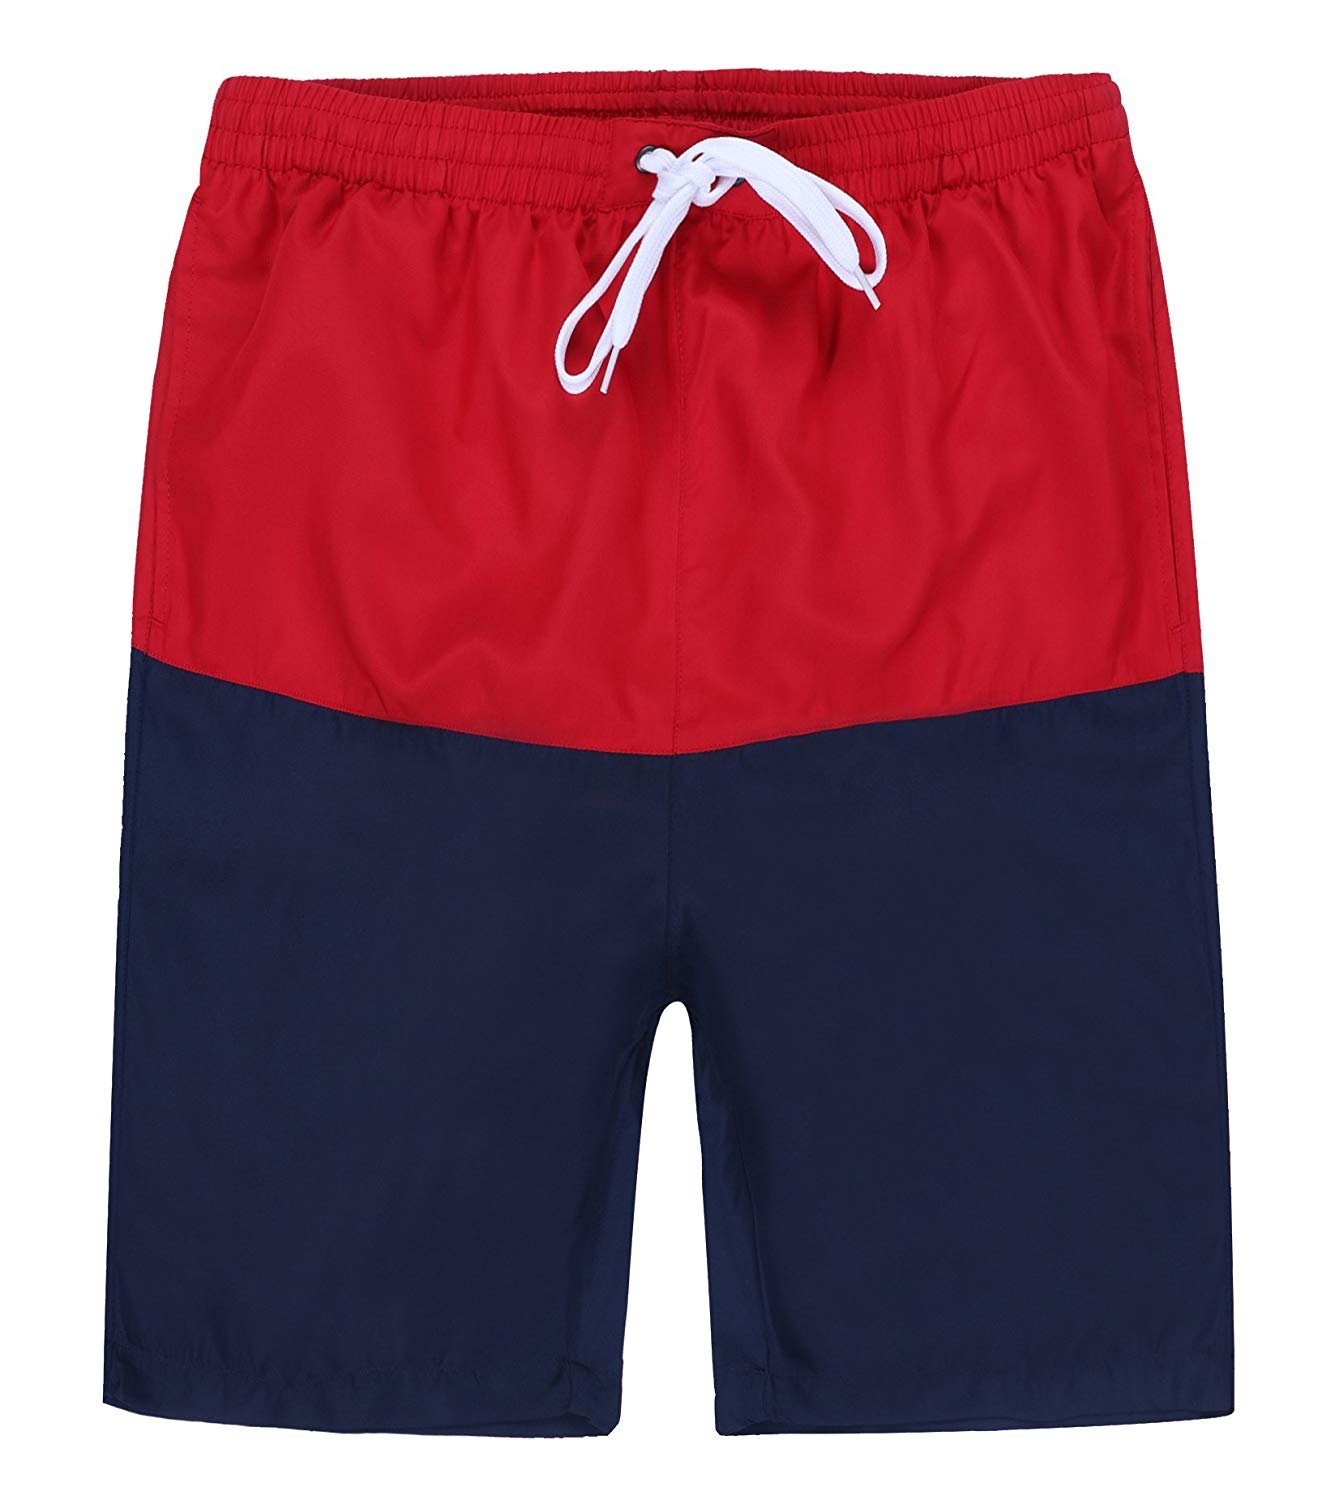 1e4fc1a76f Get Quotations · Dwar Men's Swim Trunks, Beach Shorts with Mesh Lining Watershort  Swimsuit with Cargo Pockets